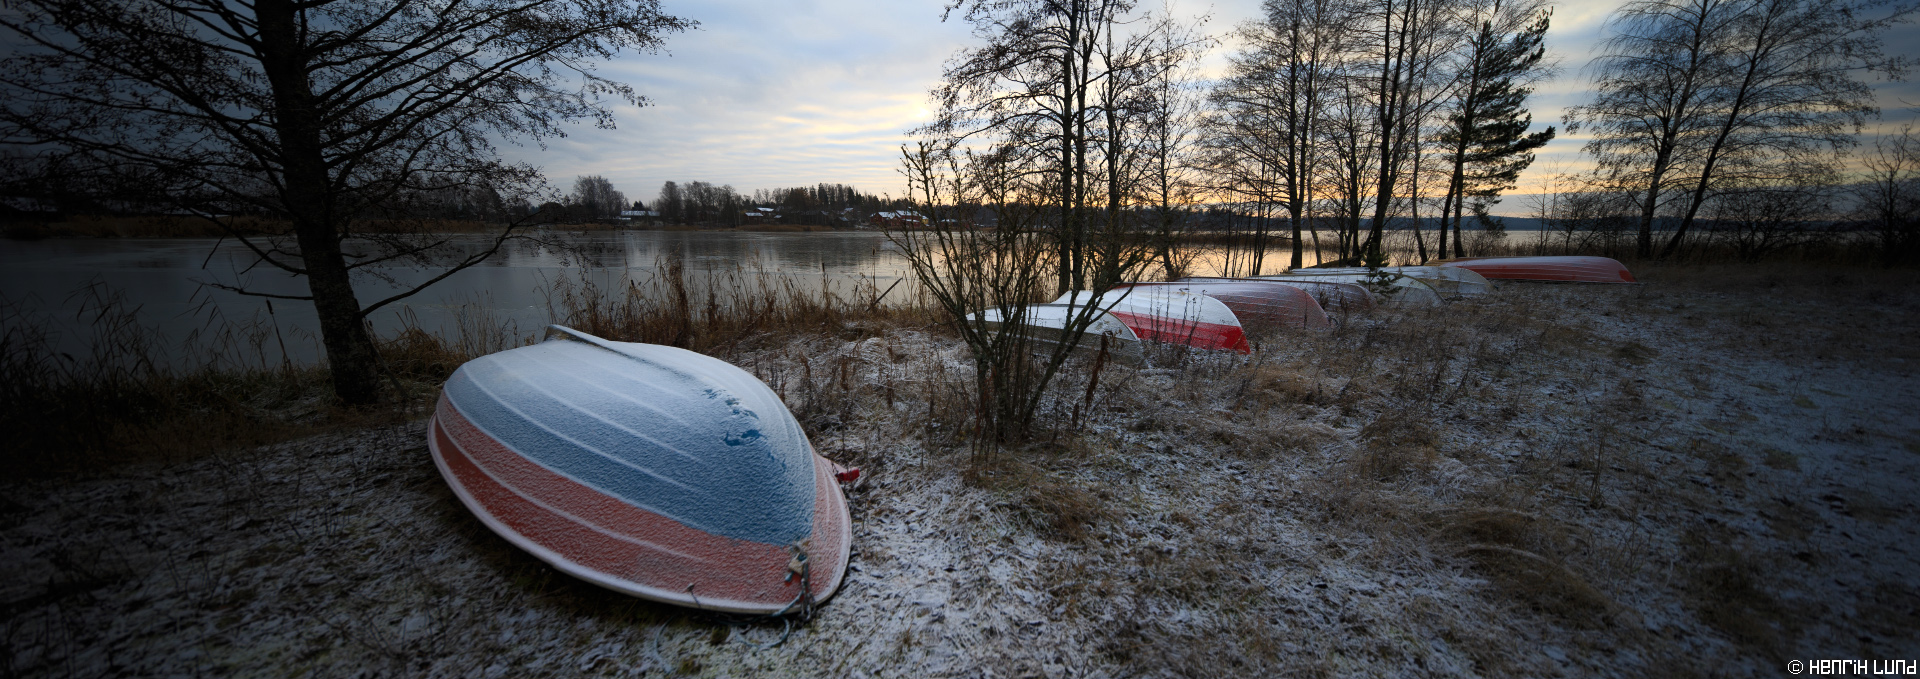 Panoramic view over the first ice cover autumn 2014 - boats are on the shore waiting for the next summer season. Norrby, Lappträsk, Finland. December 2014.